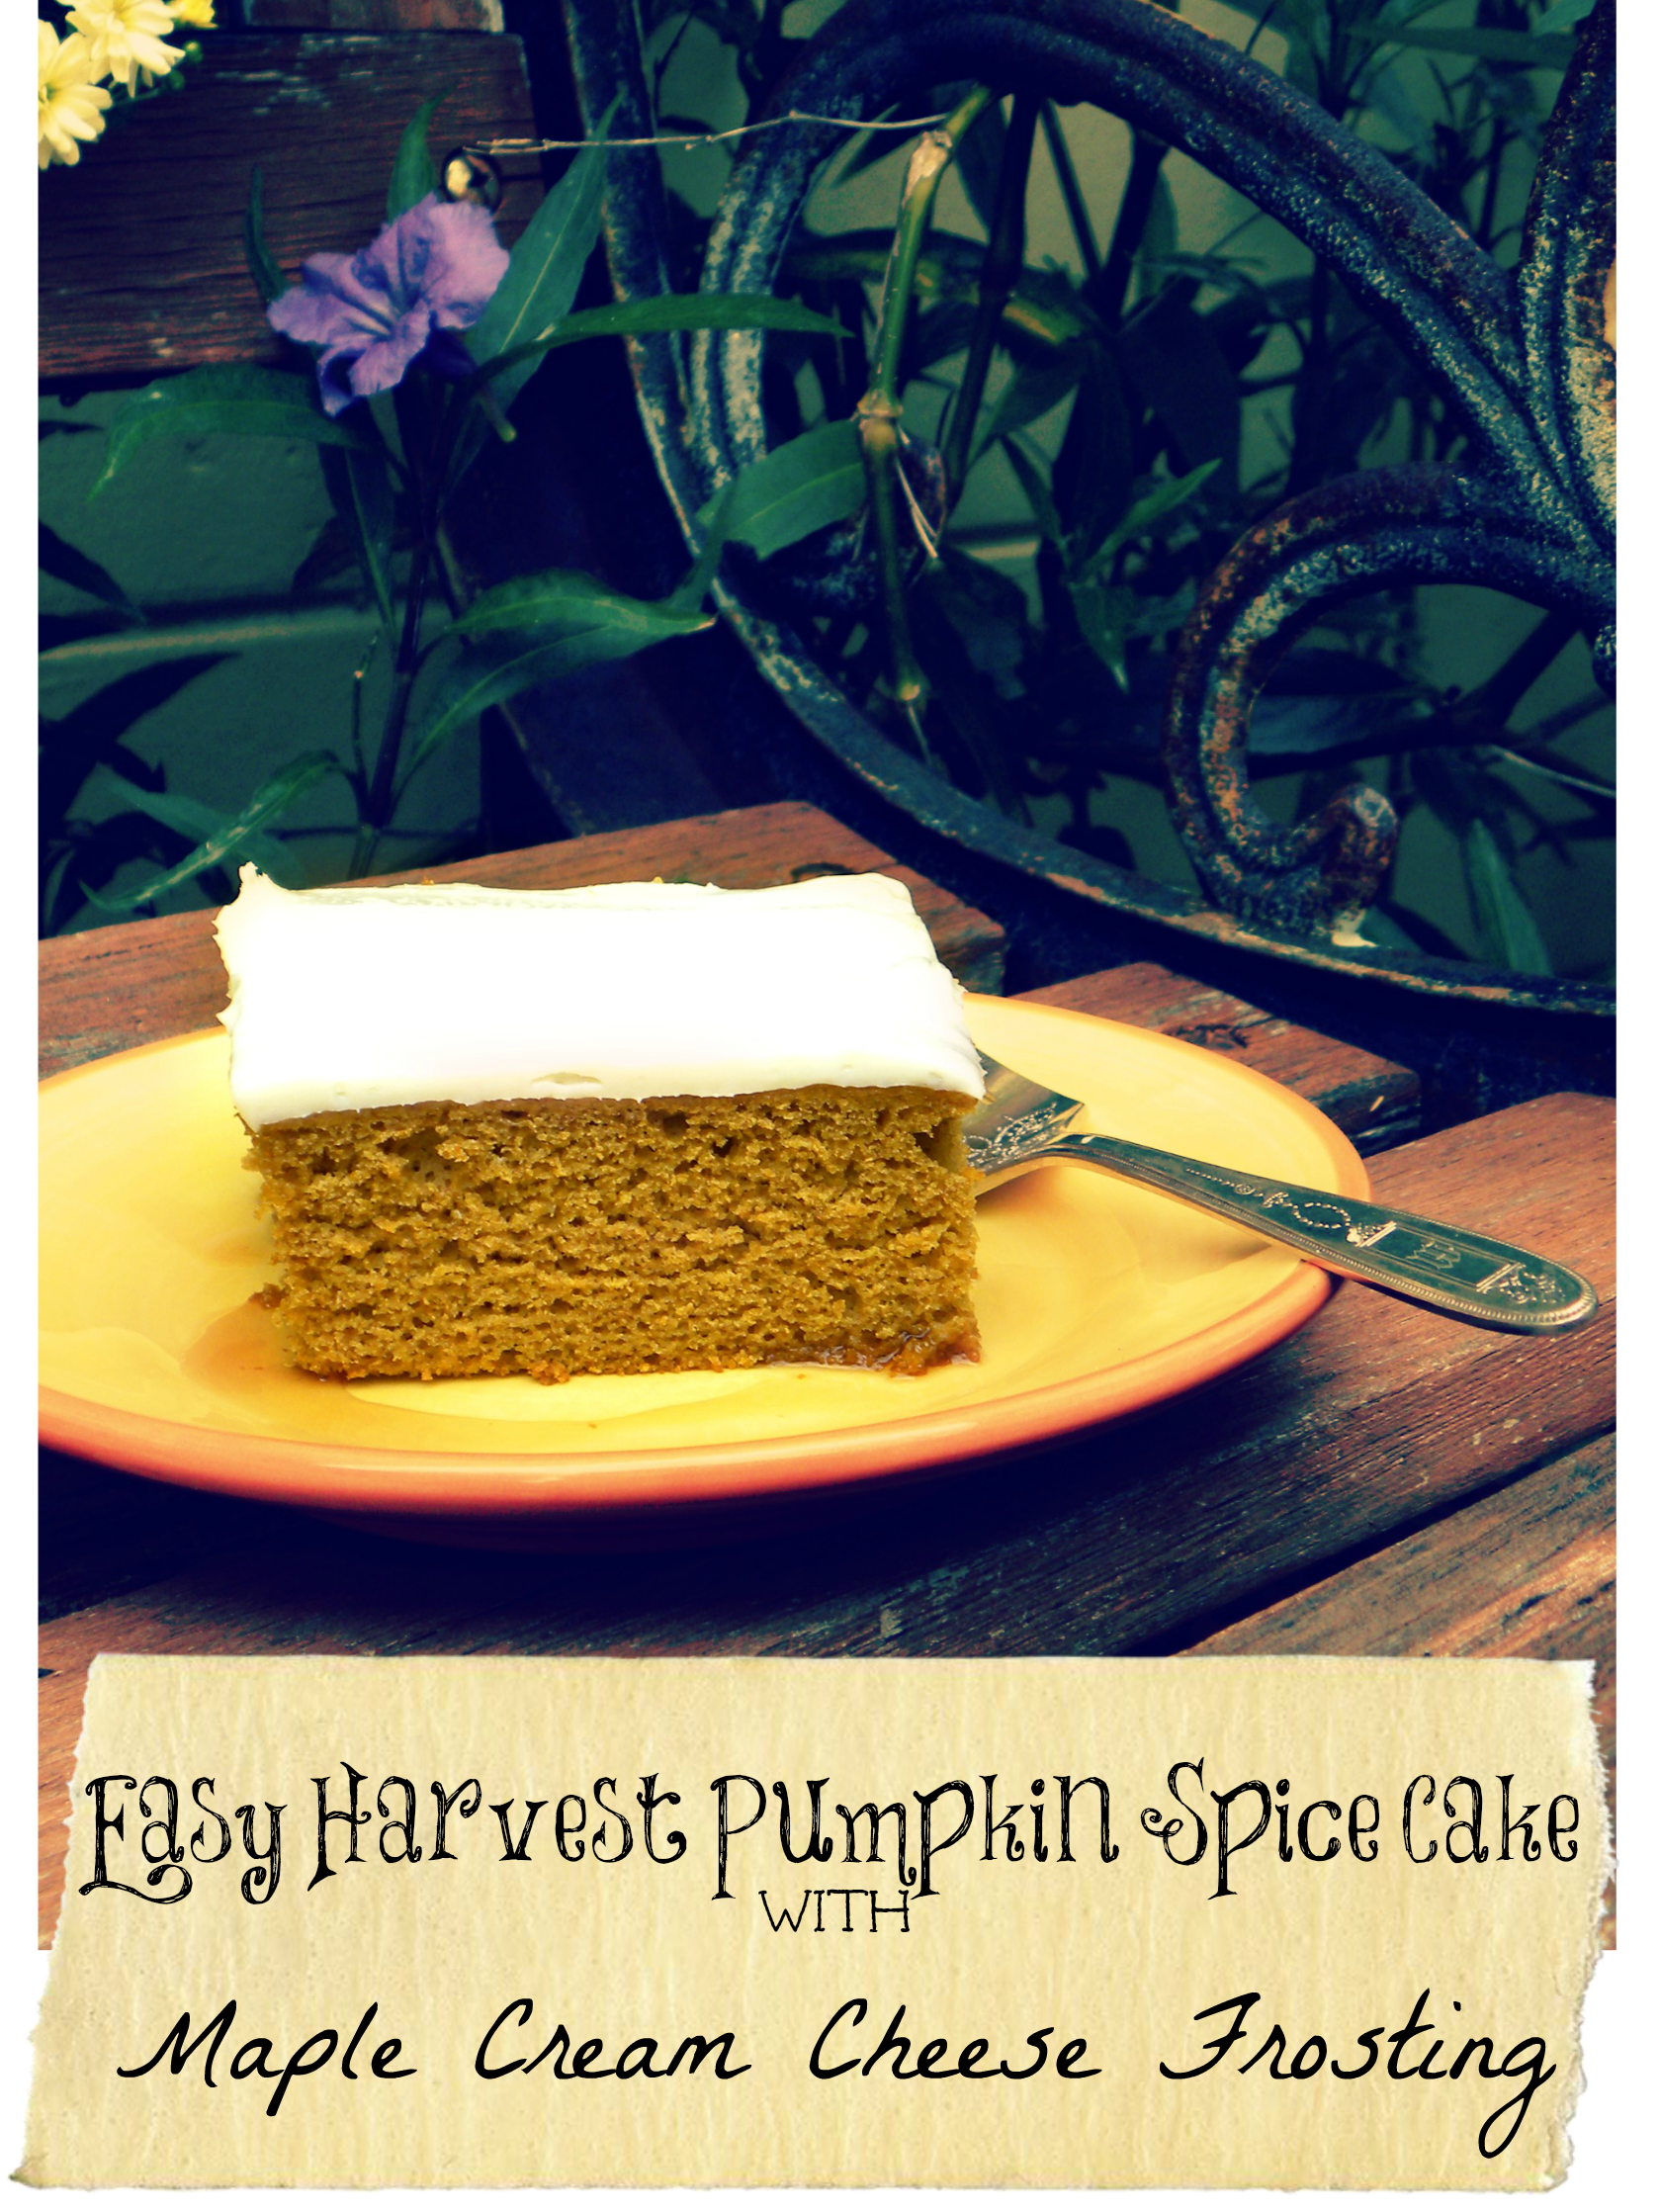 SUPER Easy Harvest Pumpkin Spice Cake with Maple Cream Cheese Frosting